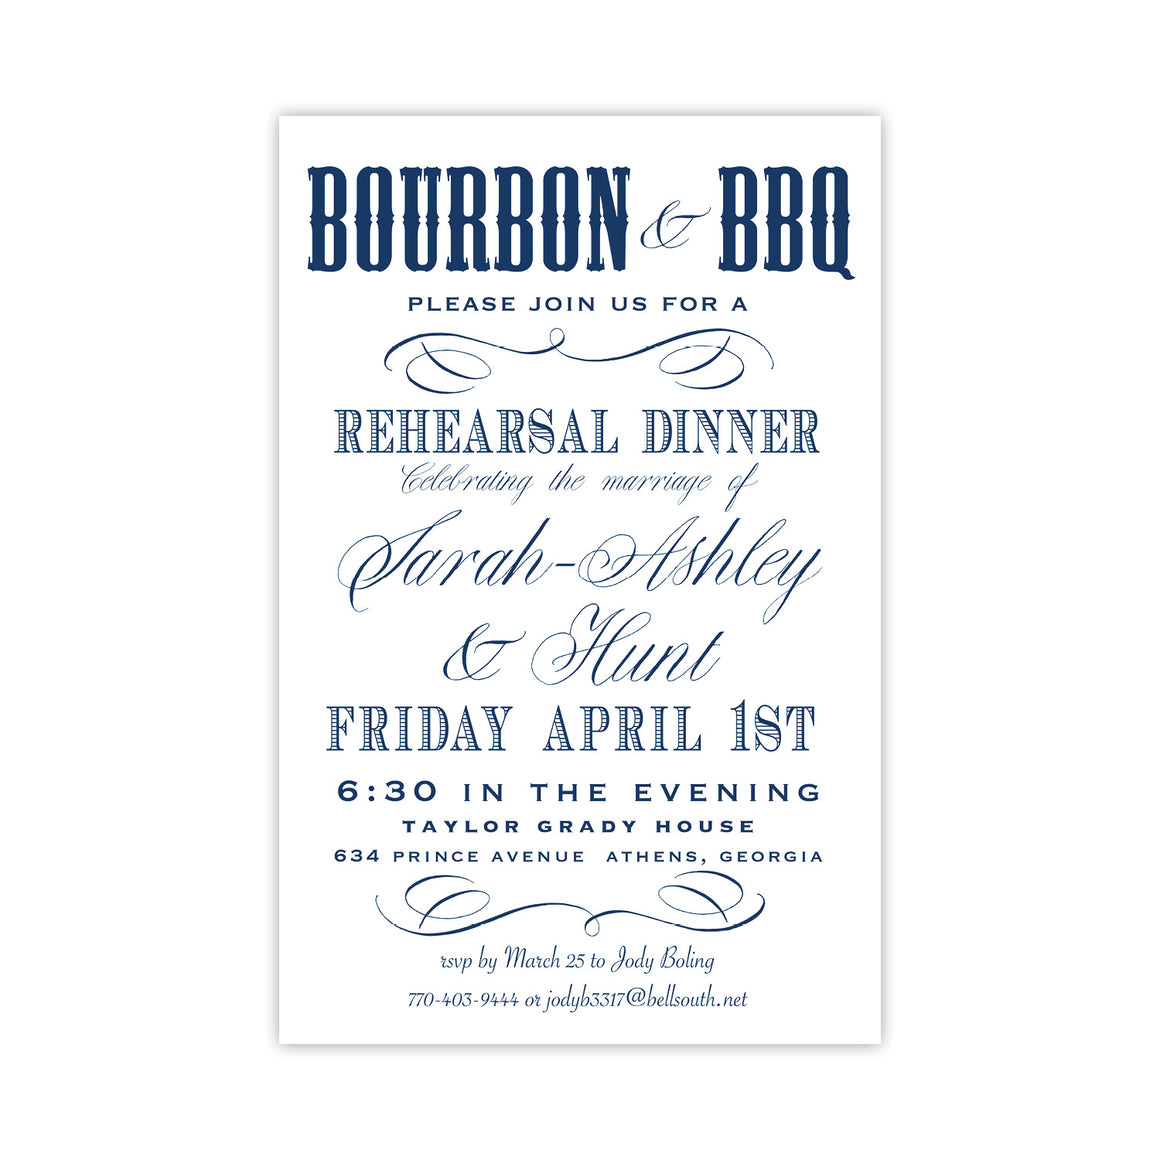 Bourbon and BBQ Rehearsal Dinner Invitation